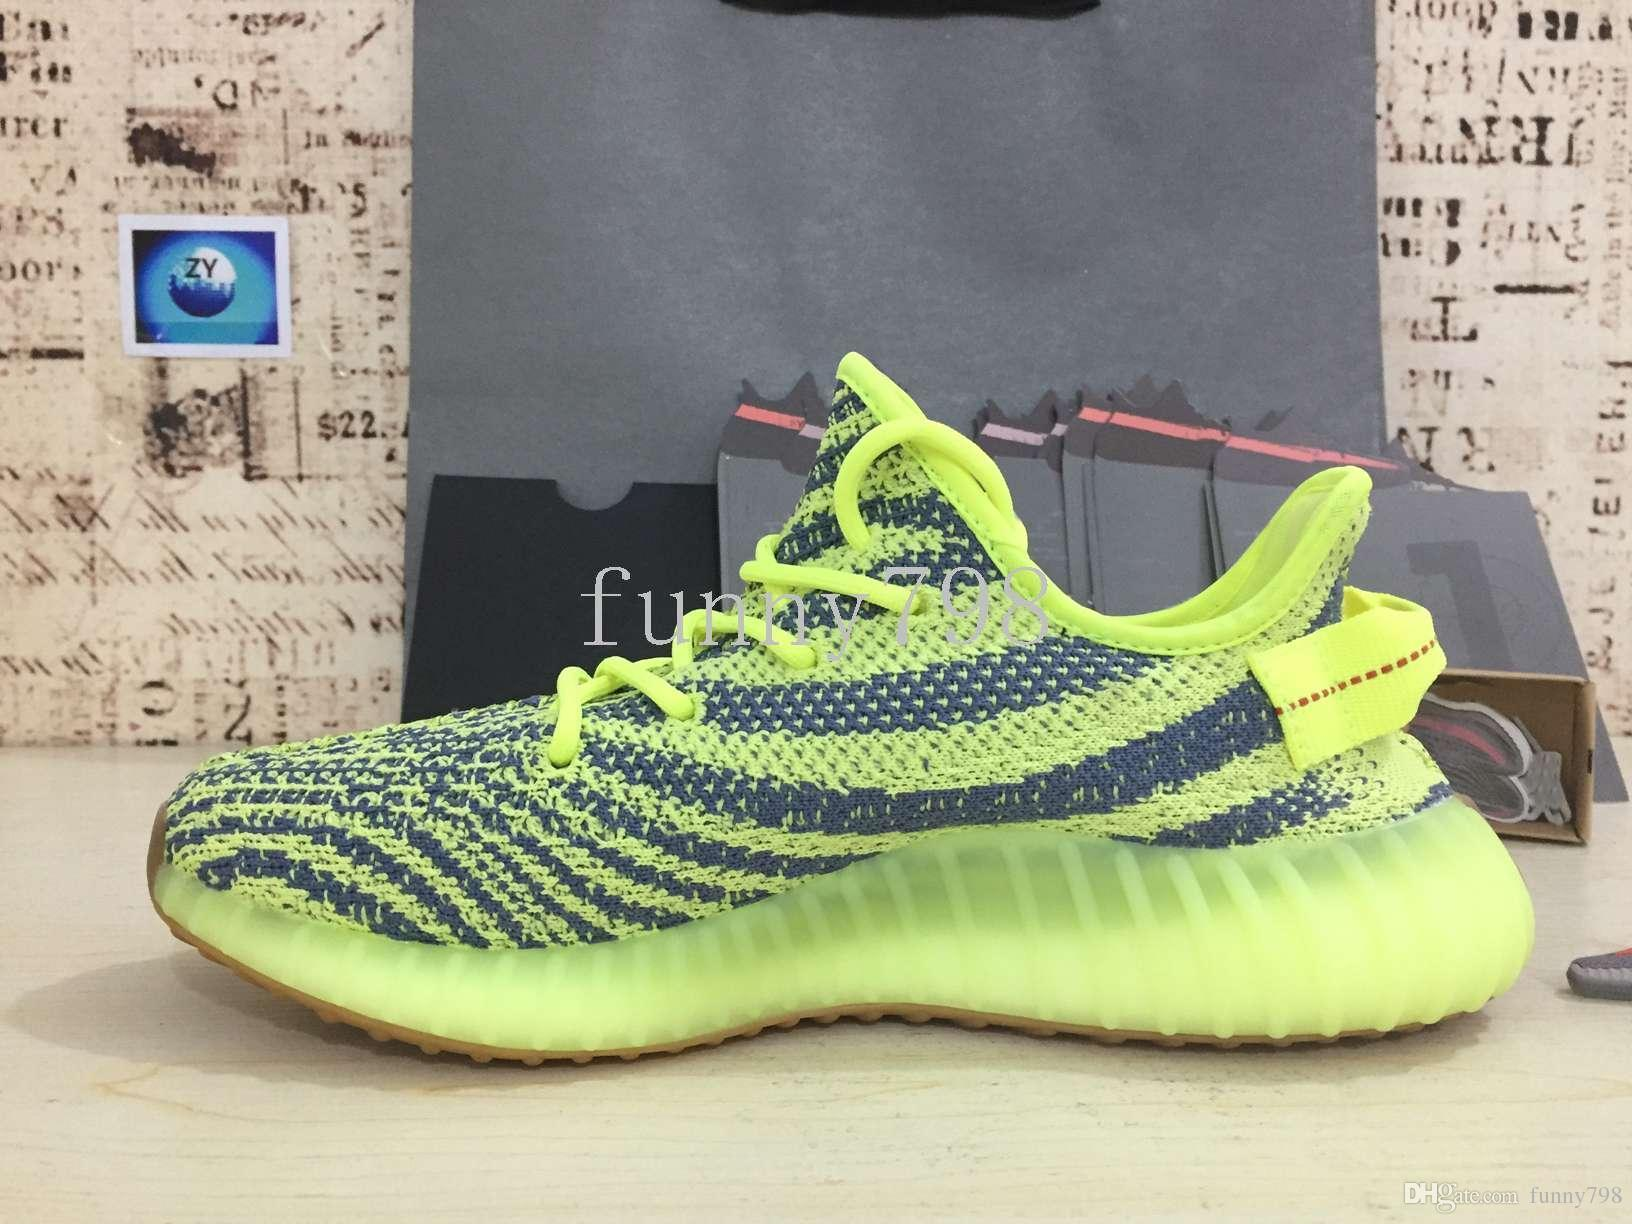 Mejor [] 2019 V2-2.0 Zebra Breds Ored Static Seasam Frozen Yellow 2.0 Kanye West 3m Zapatos reflectantes Hombre Mujer Diseñador Zapatillas